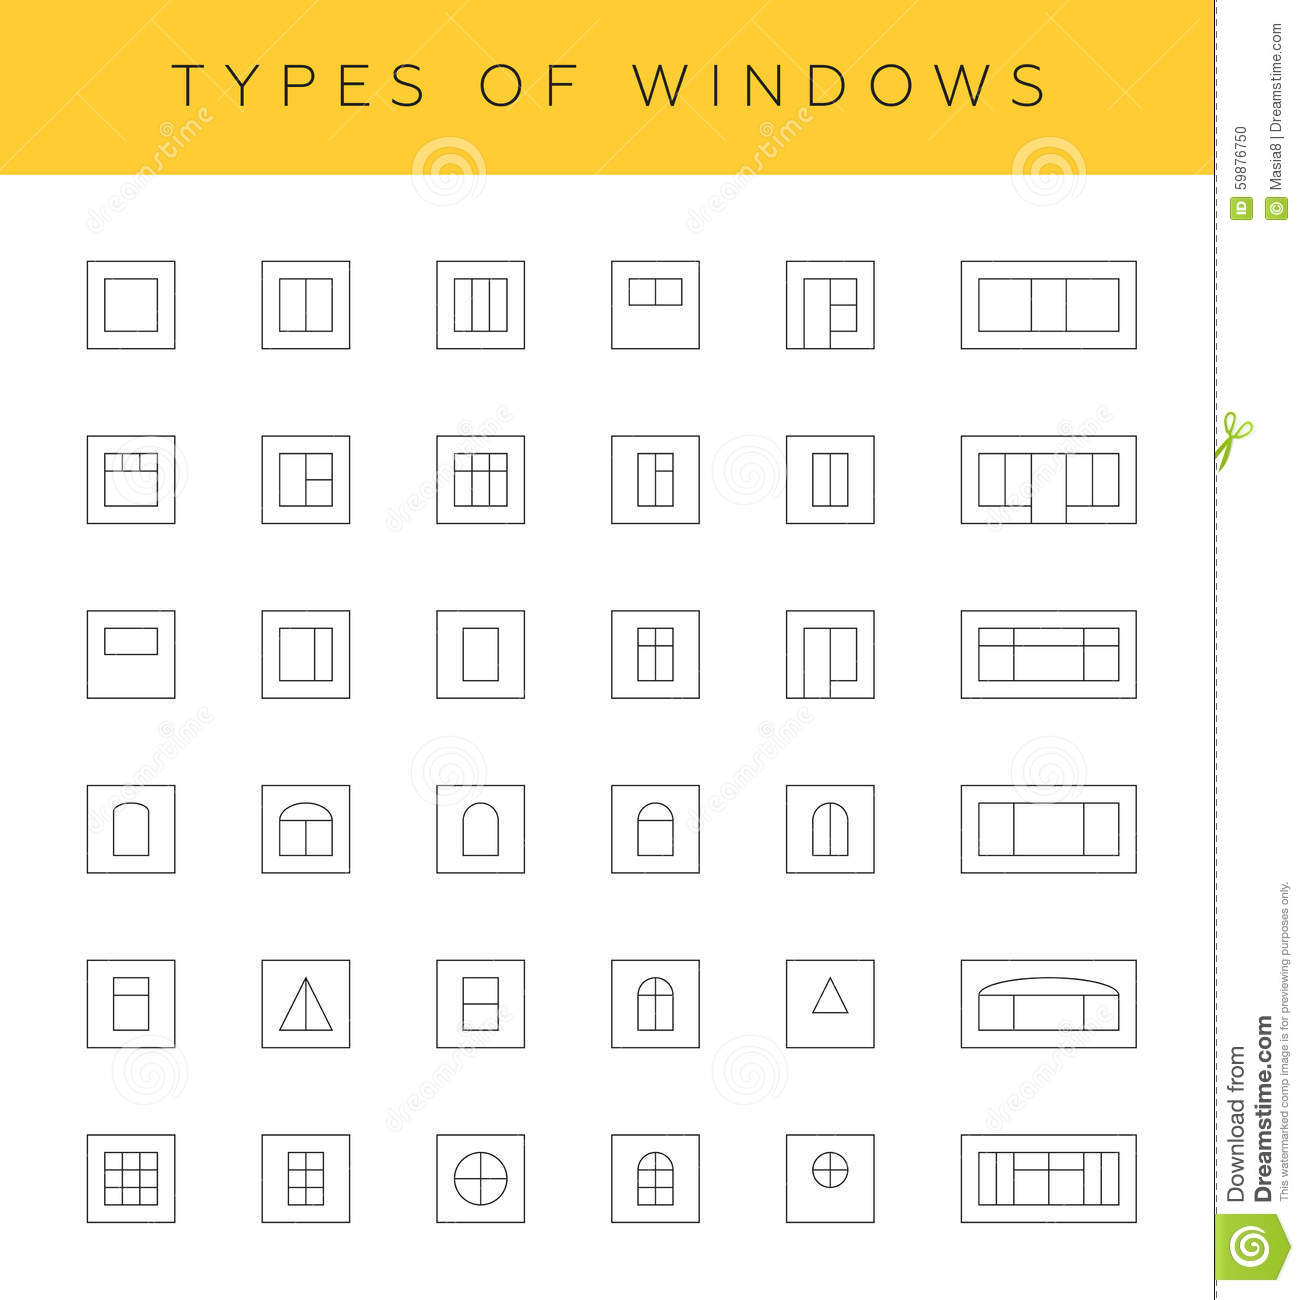 Types of windows stock illustration image 59876750 for Types of windows